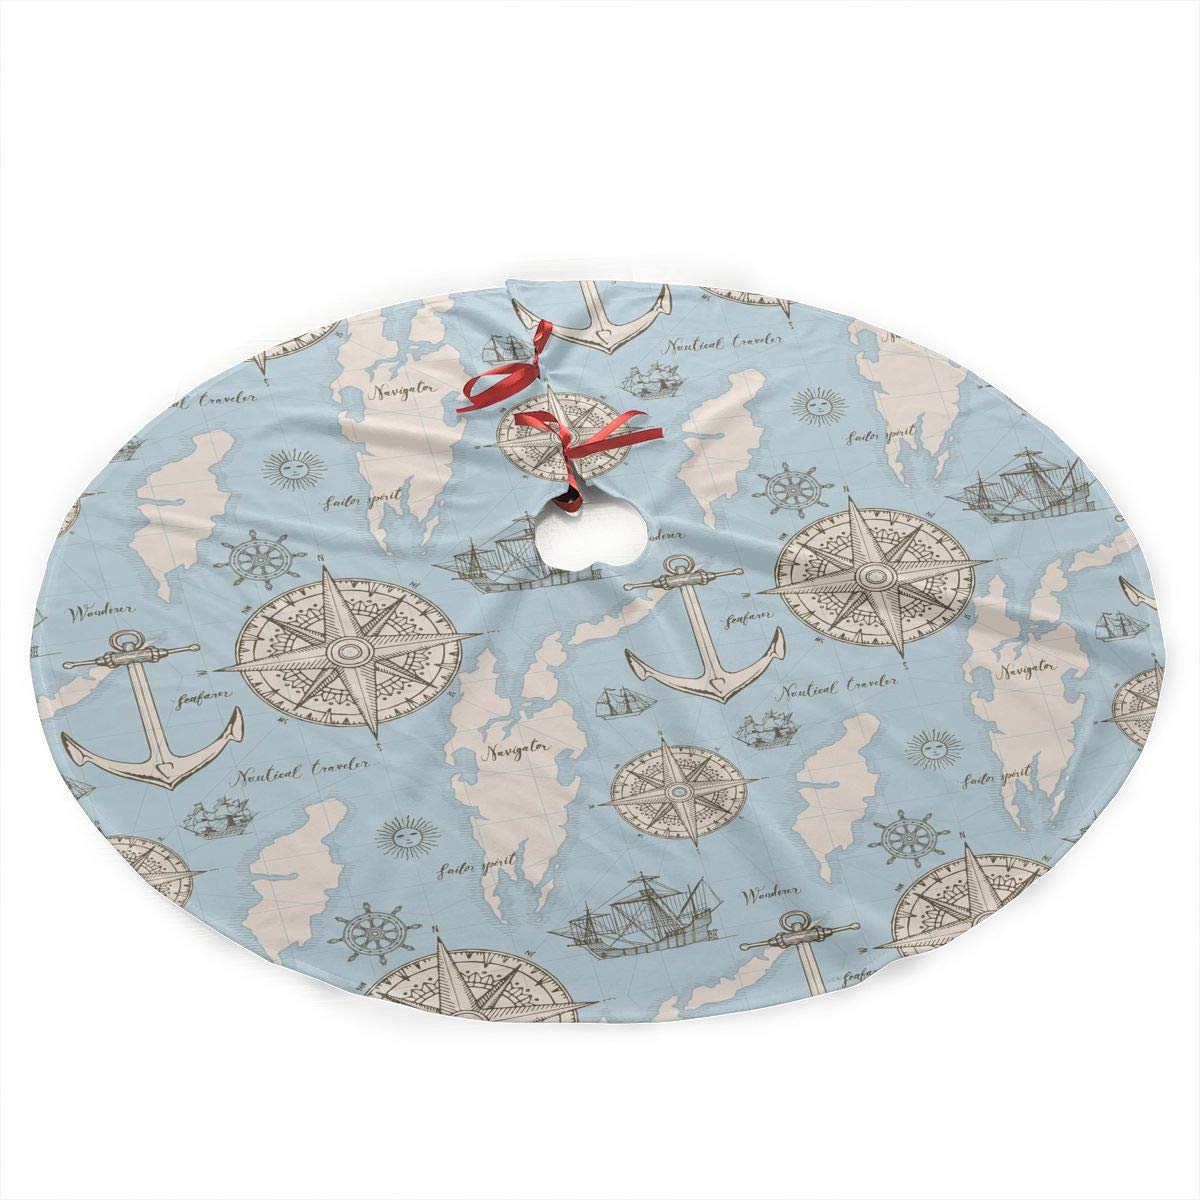 "Amazon.com: SXKKoin 35.5"" Traditional Holiday Christmas Tree Skirt with  Retro Style Nautical Element Design: Home & Kitchen"